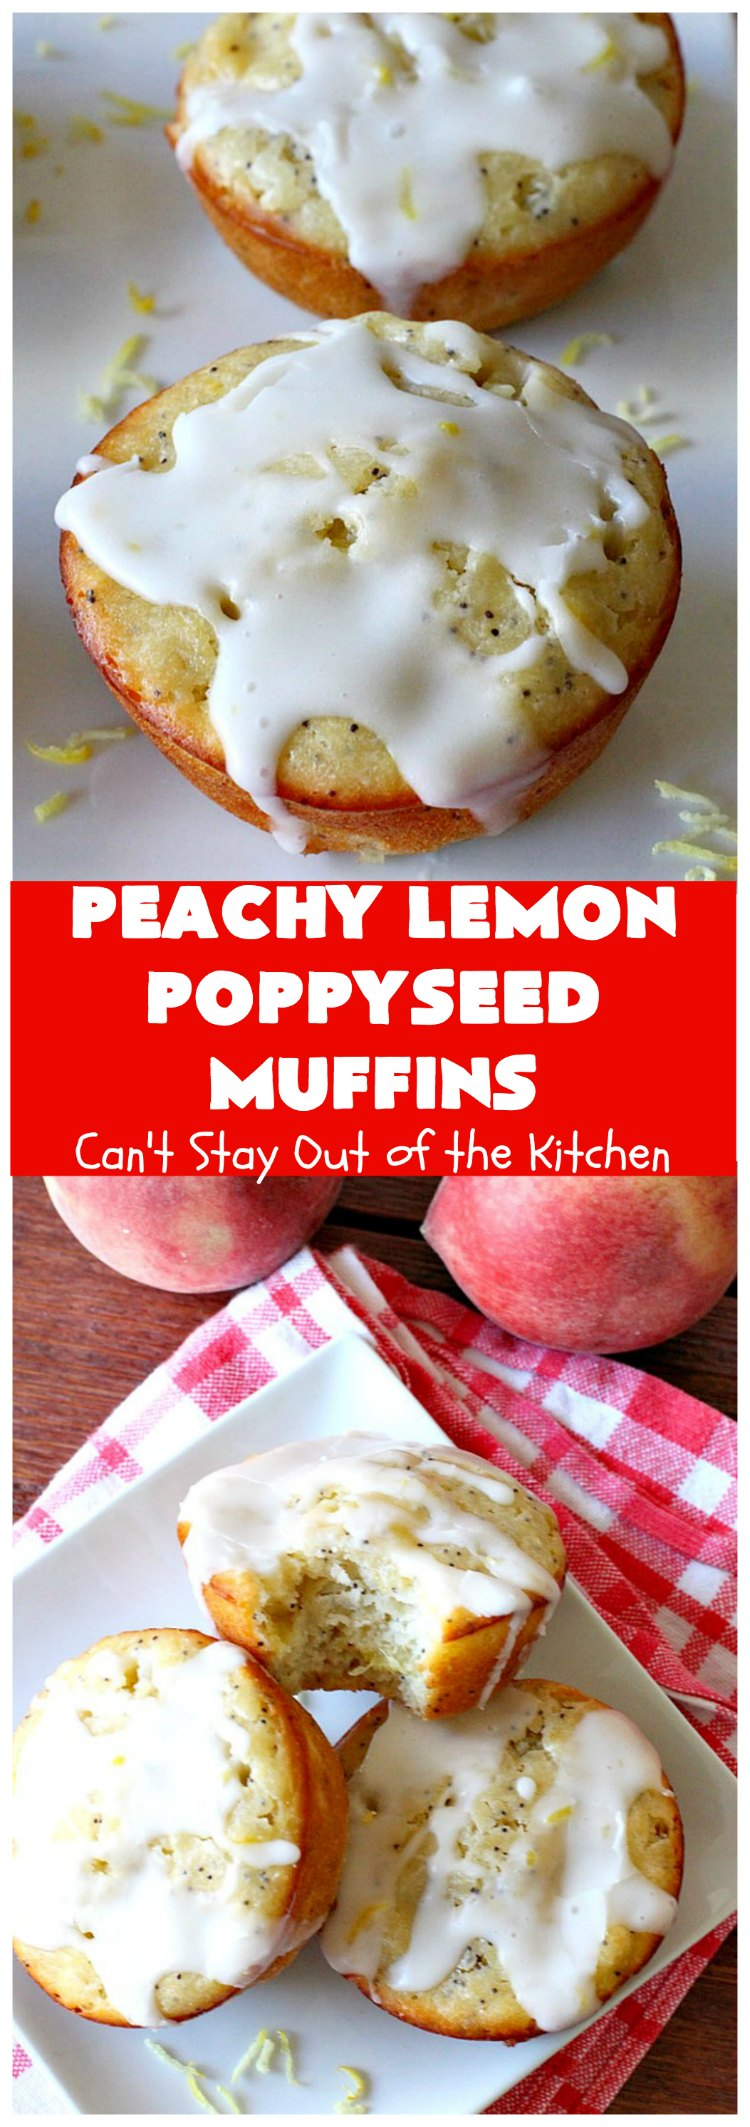 Peachy Lemon Poppyseed Muffins | Can't Stay Out of the Kitchen | these luscious #muffins are filled with #peaches, #lemon & #poppyseeds. Terrific for a #holiday or company #breakfast. #PeachMuffins #PeachyLemonPoppyseedMuffins